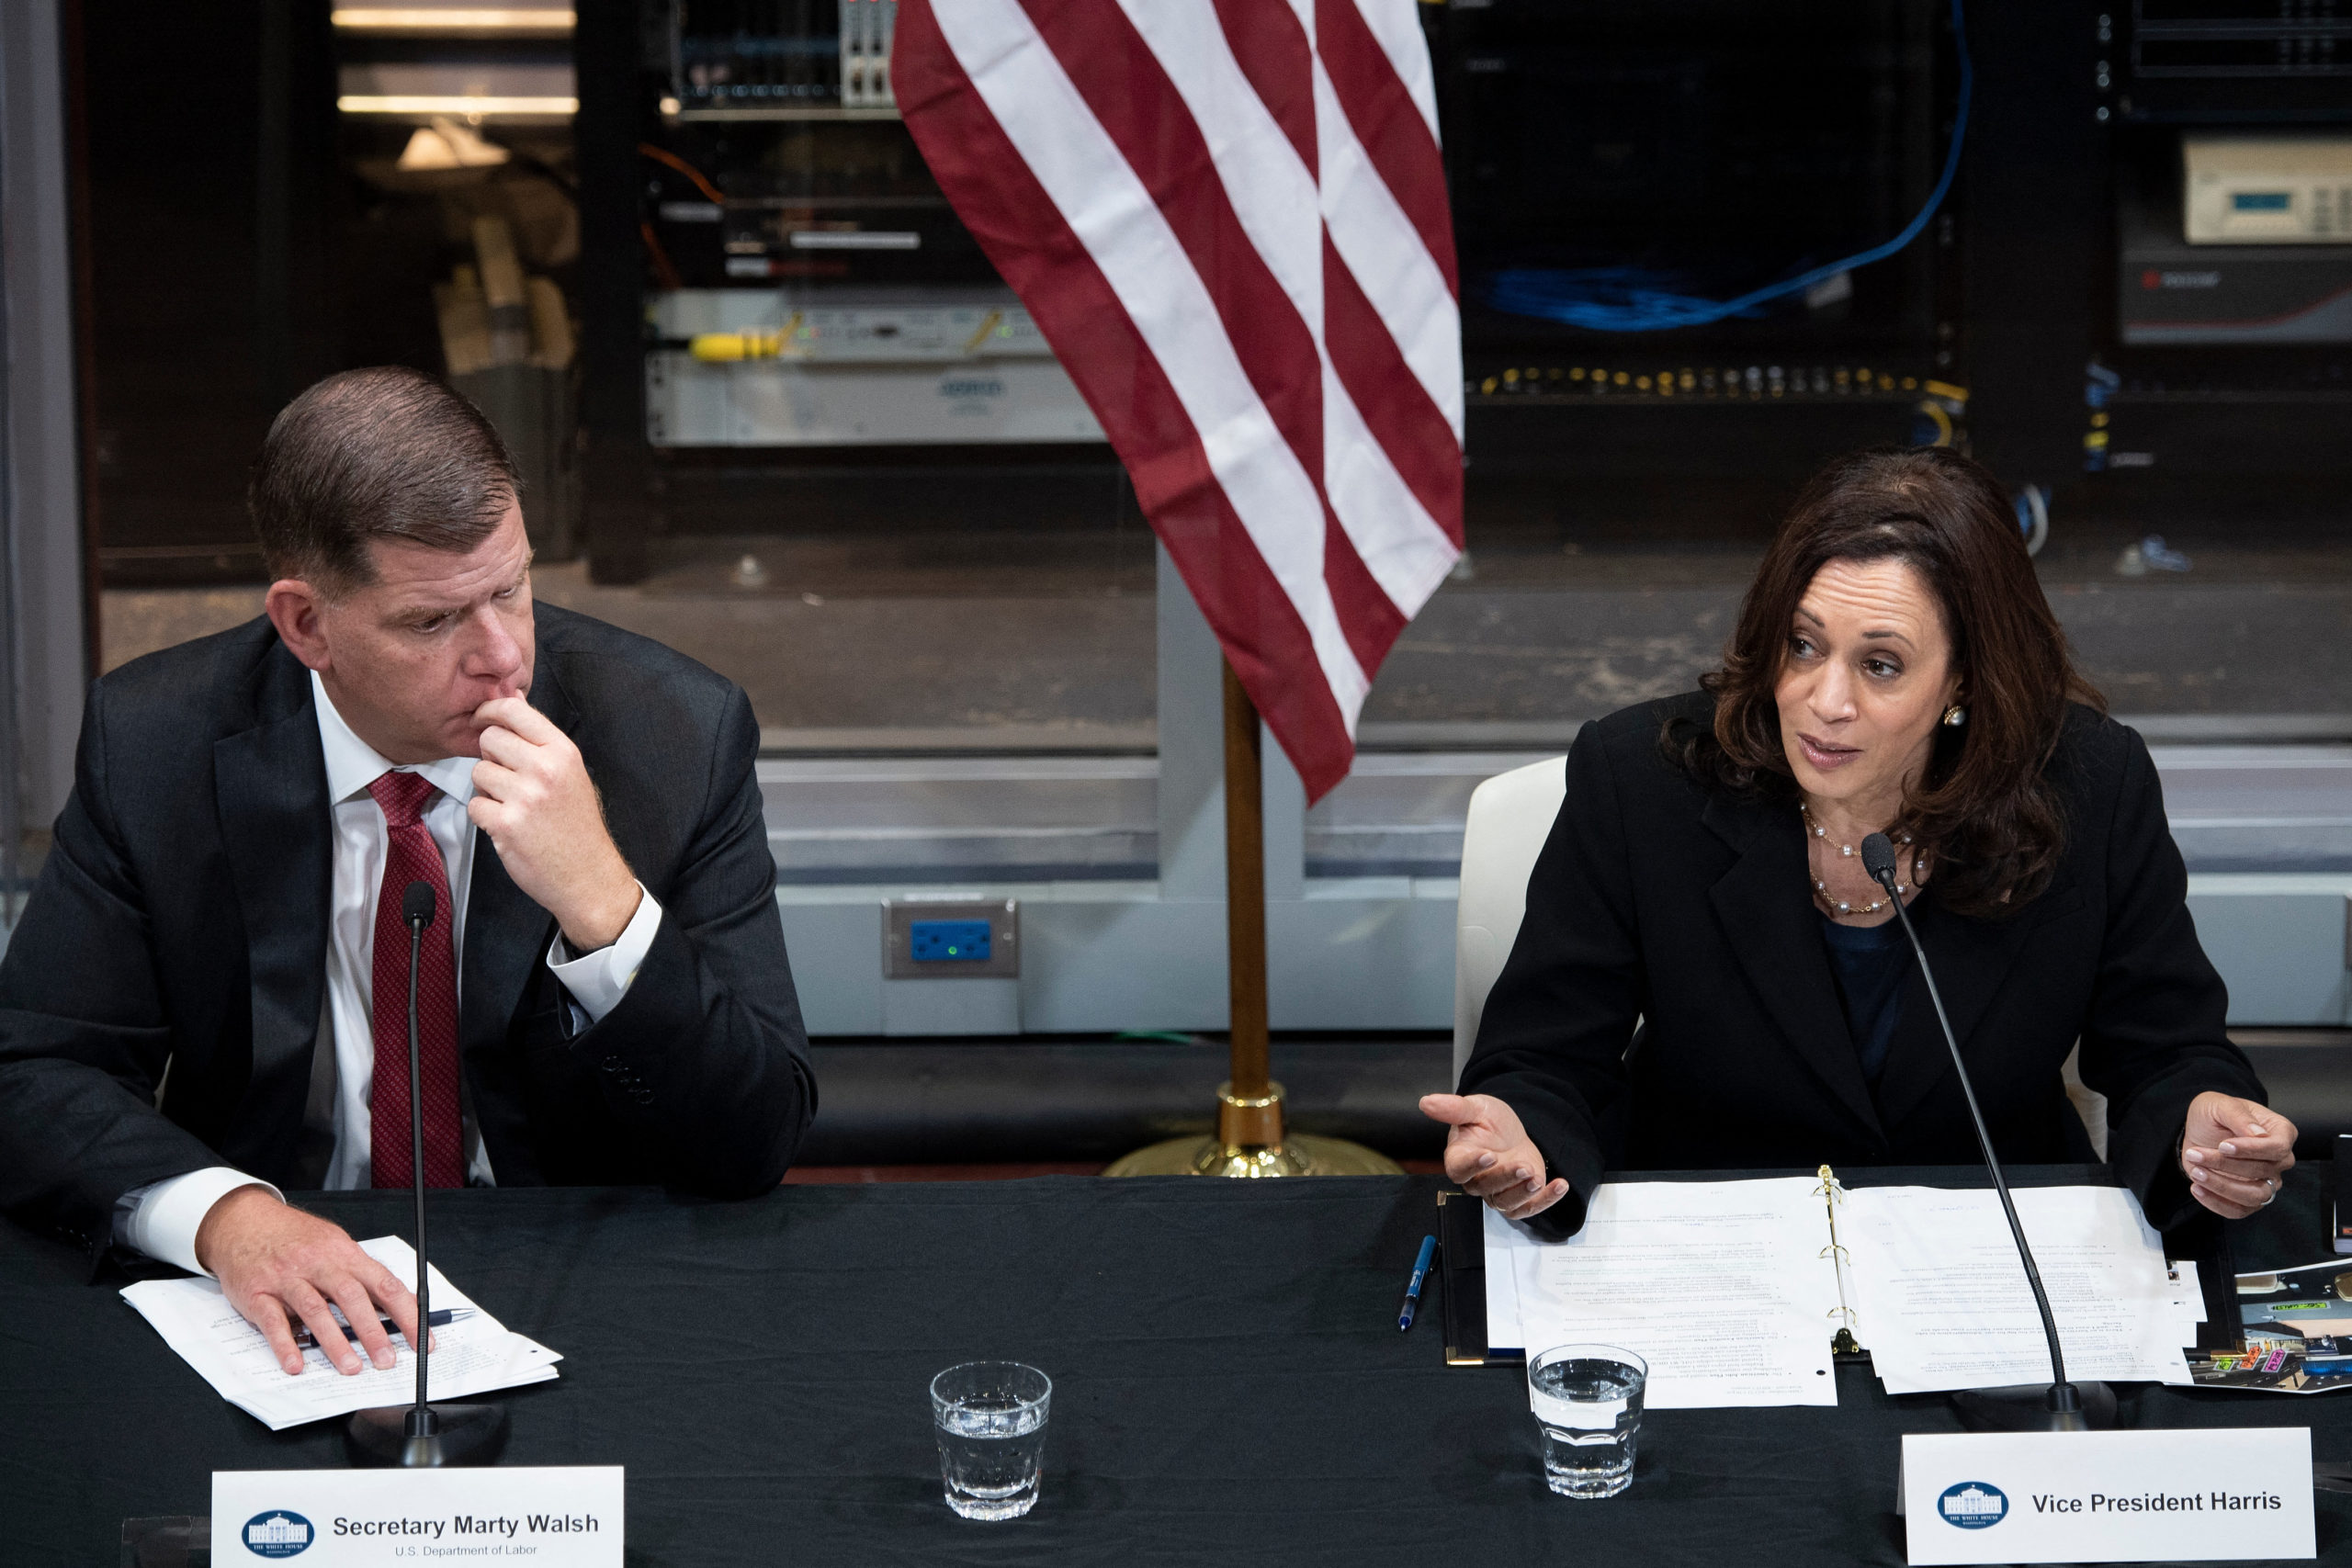 Secretary of Labor Marty Walsh listens while Vice President Kamala Harris speaks at a round table discussion on June 21 in Pittsburgh, Pennsylvania. (Brendan Smialowski/AFP via Getty Images)